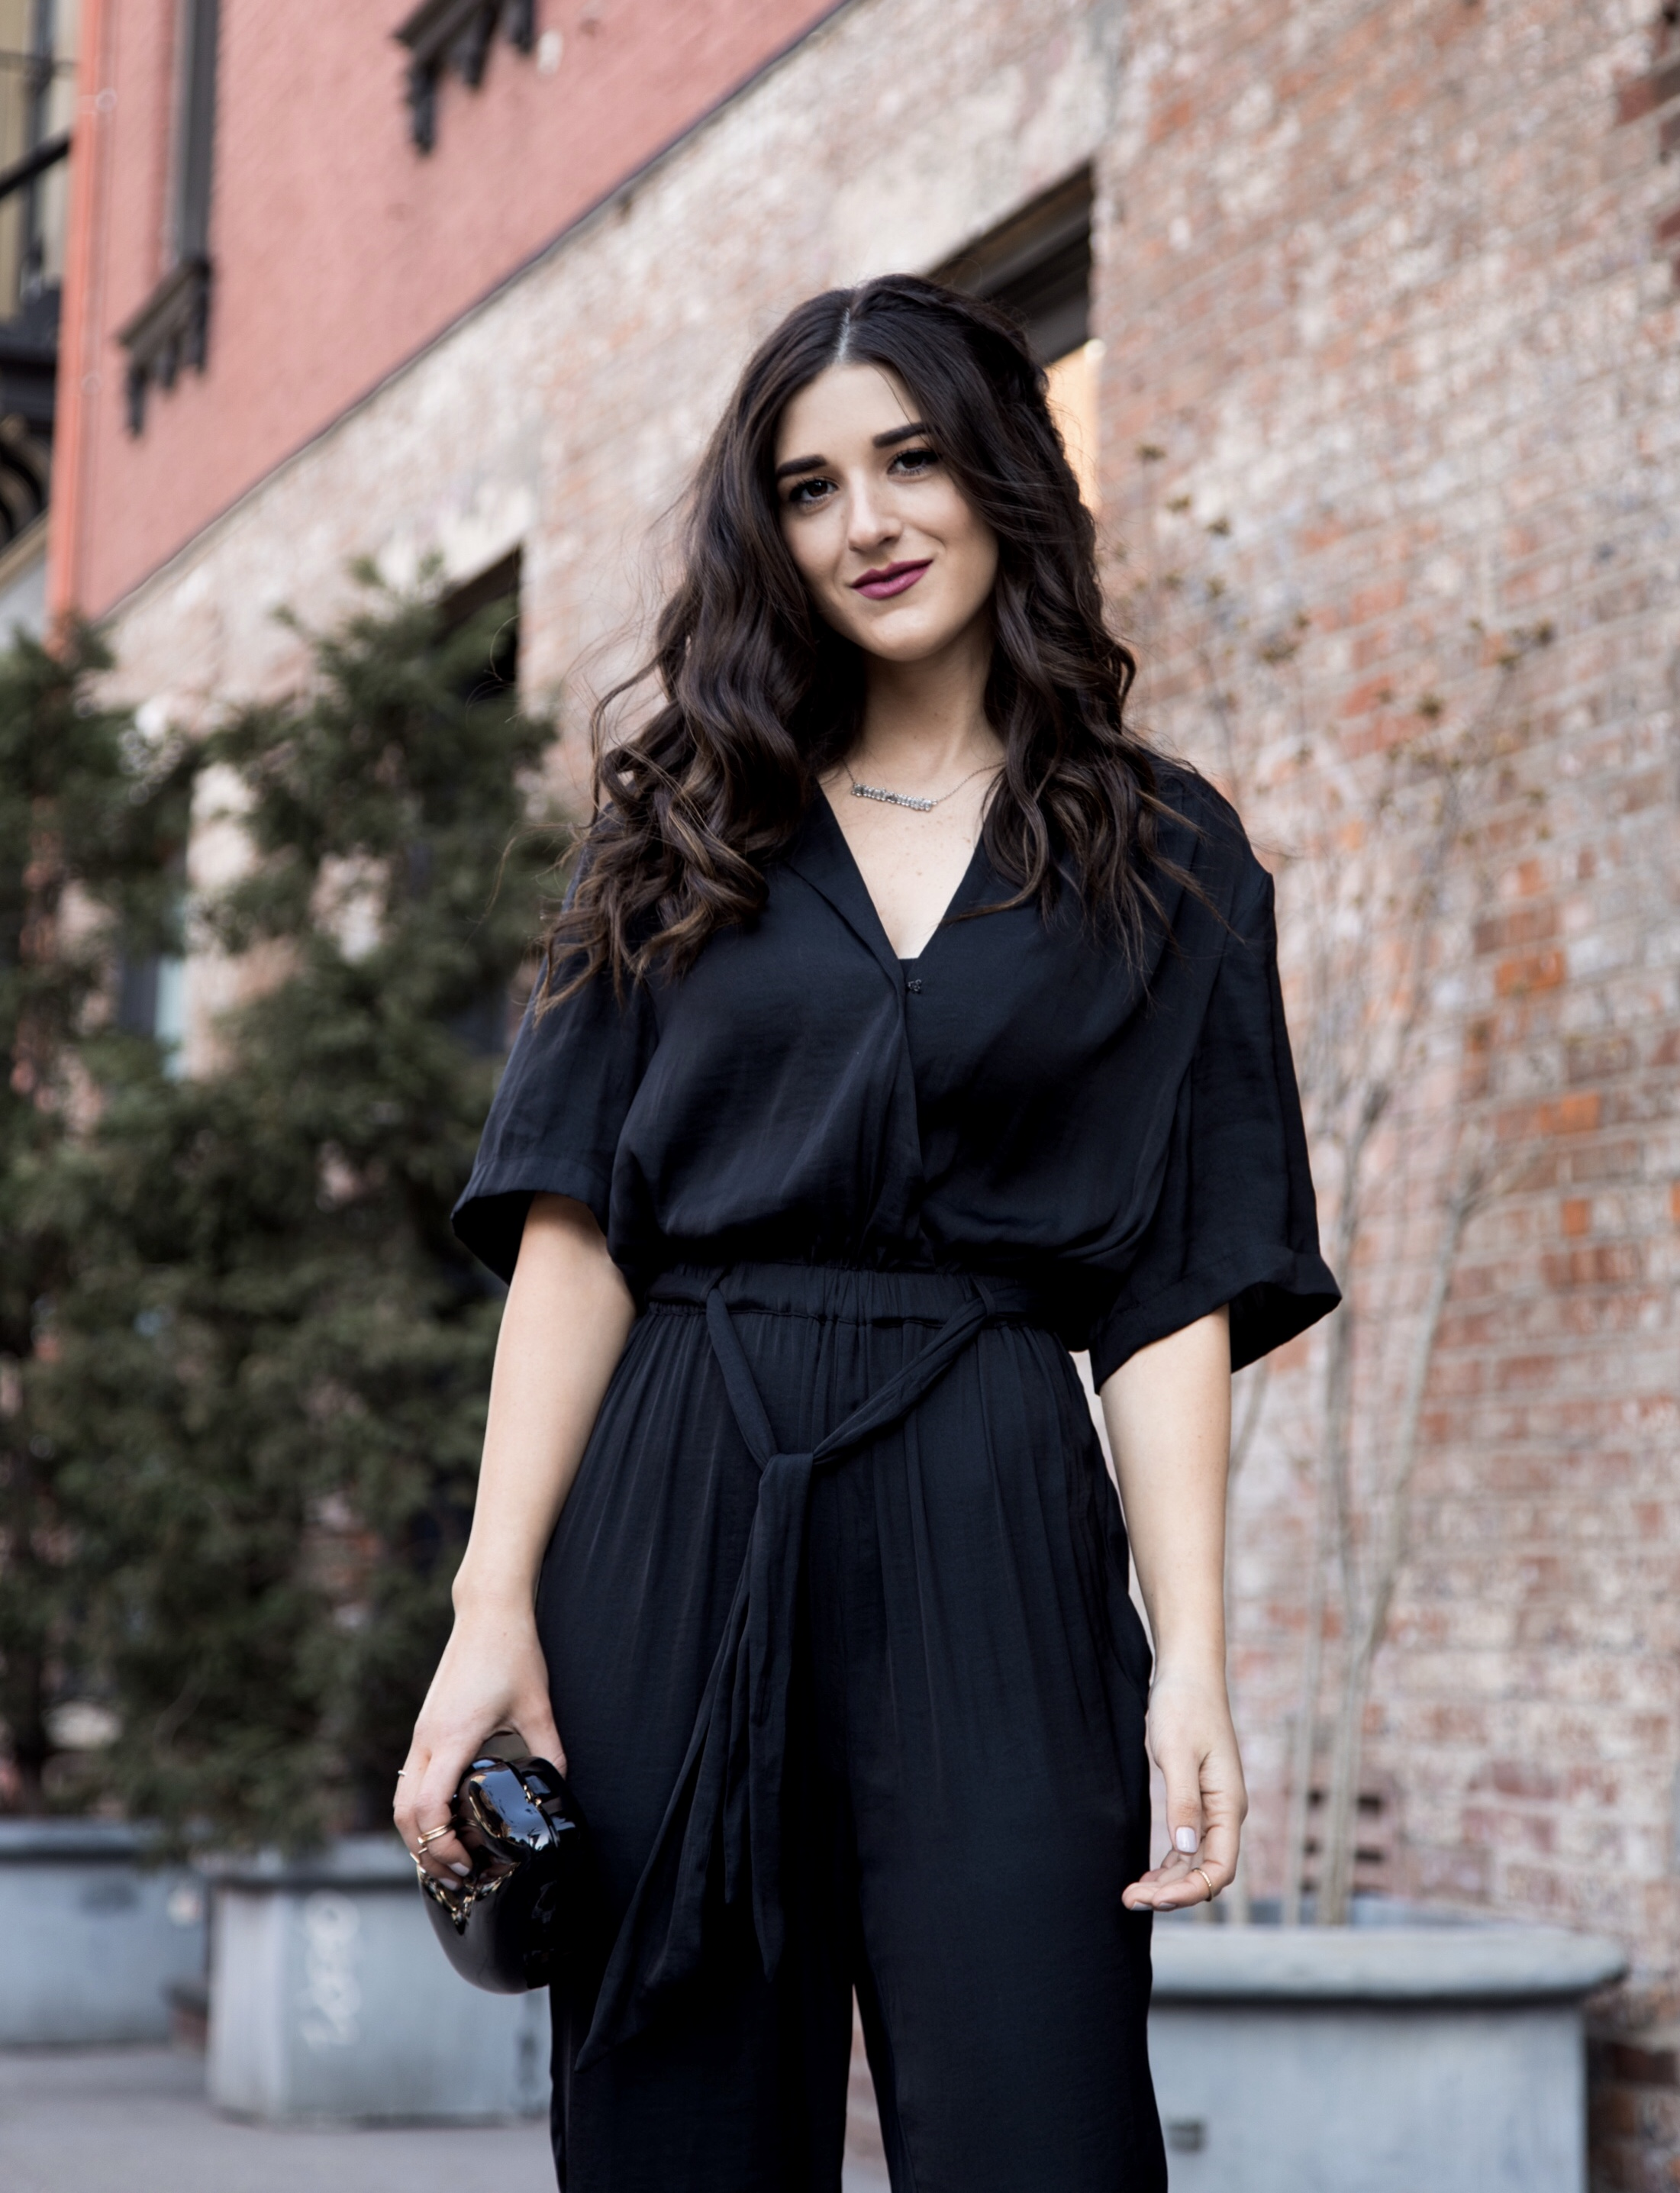 Where We're Going For Our Honeymoon Black Silk Jumpsuit Bow Mules Esther Santer Fashion Blog NYC Street Style Blogger Outfit OOTD Trendy Urban Outfitters Betsey Johnson Soho Collab Jeweled Shoes Earrings Braid Hairstyle Hoops Necklace Lips  Clutch Bag.jpg